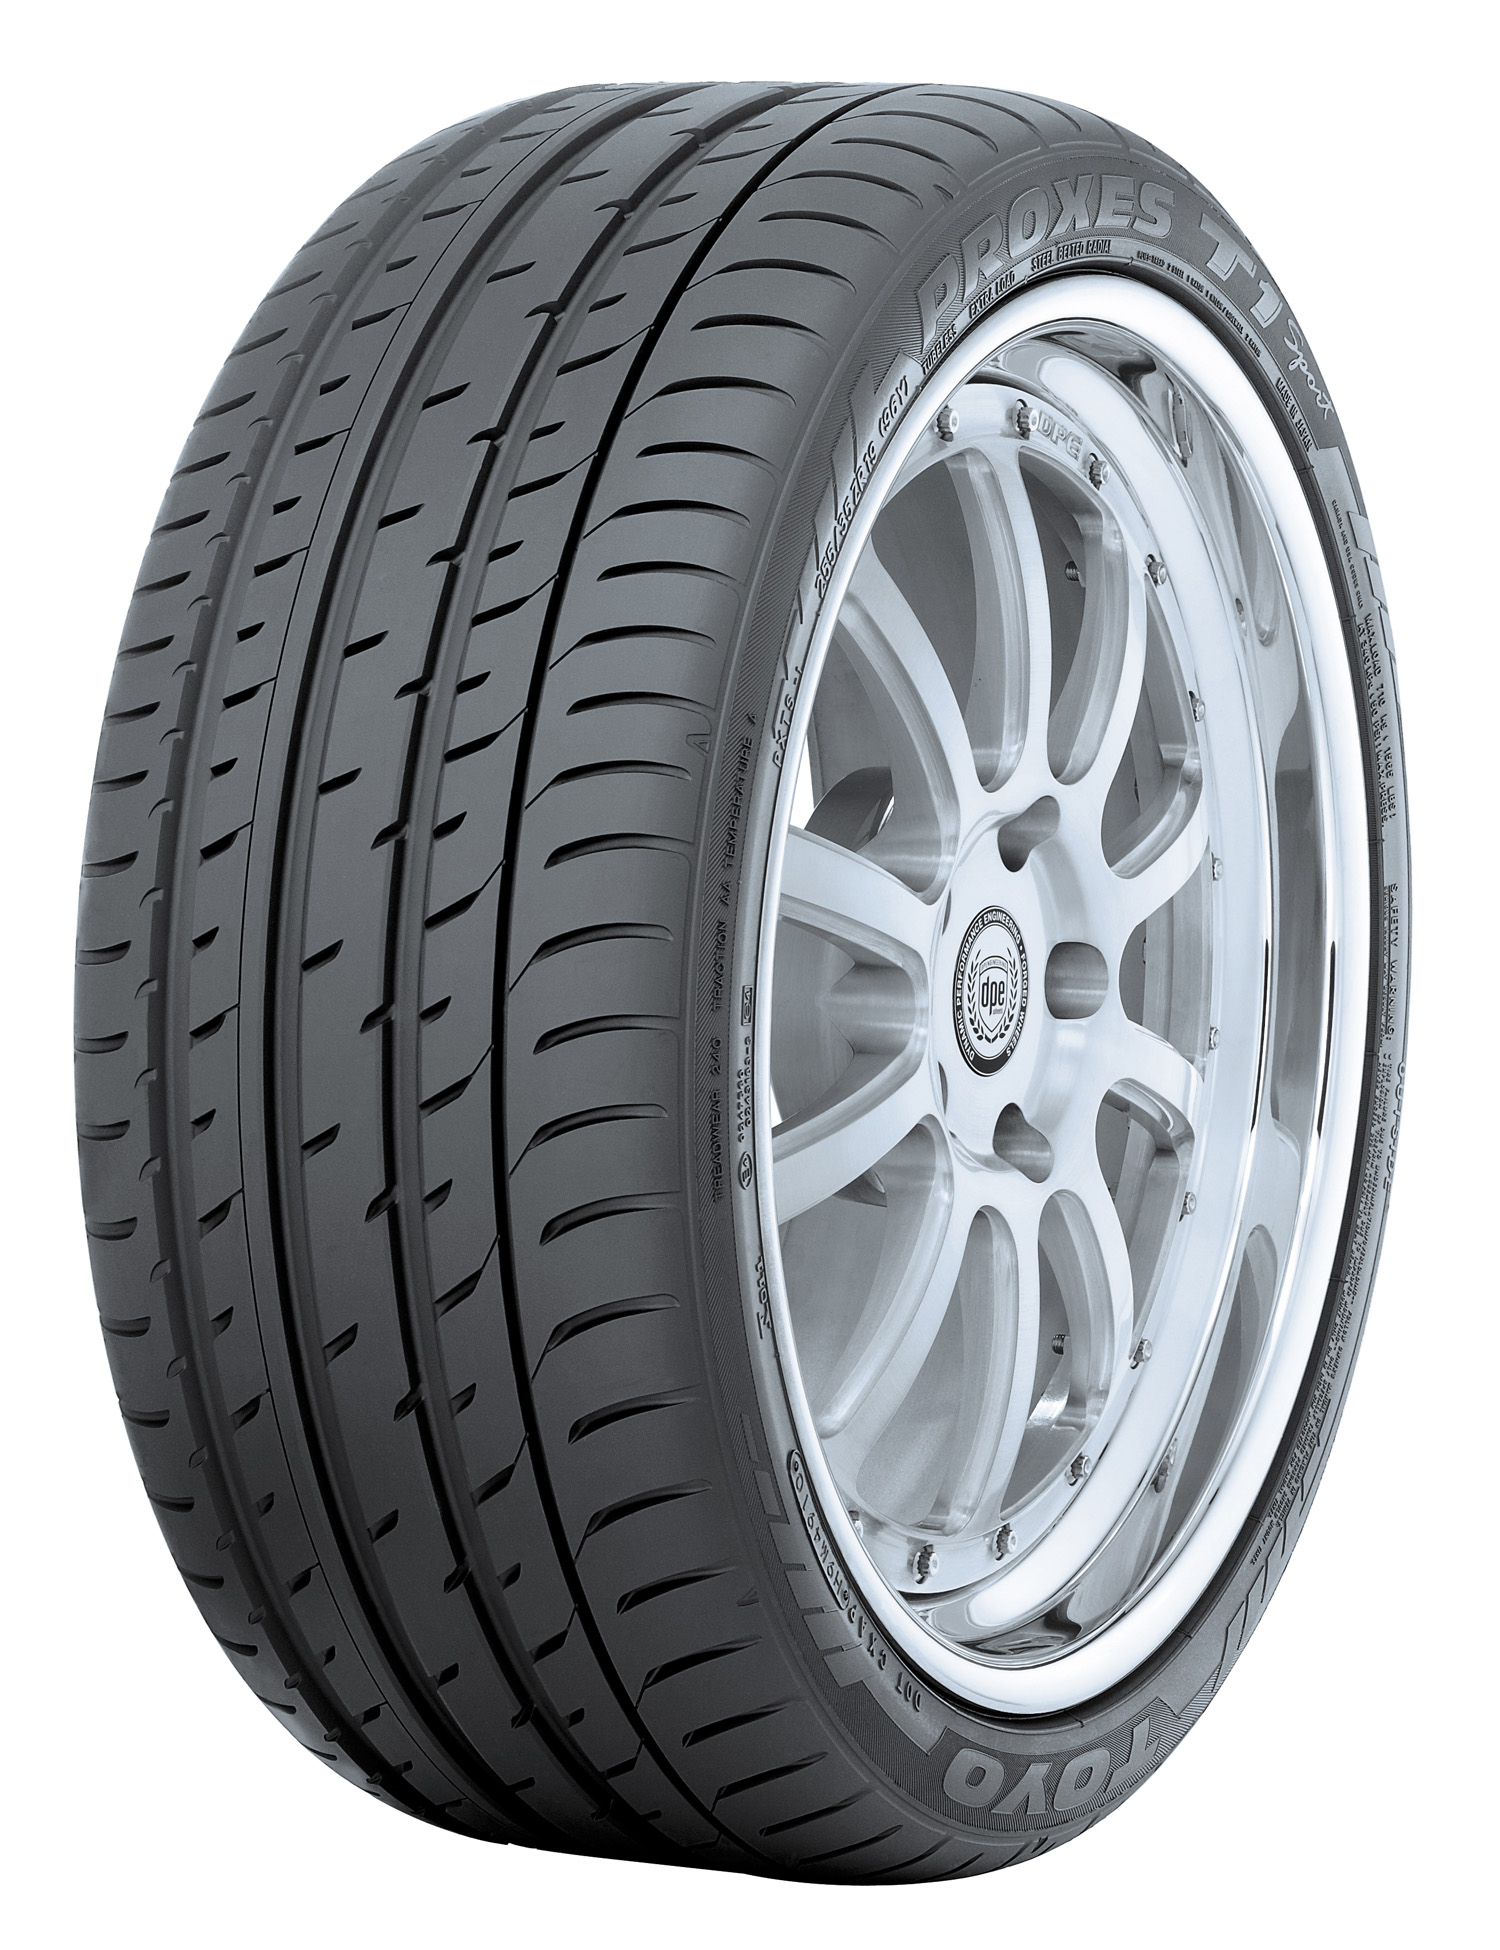 Toyo debuts Proxes T1 Sport UHP tire